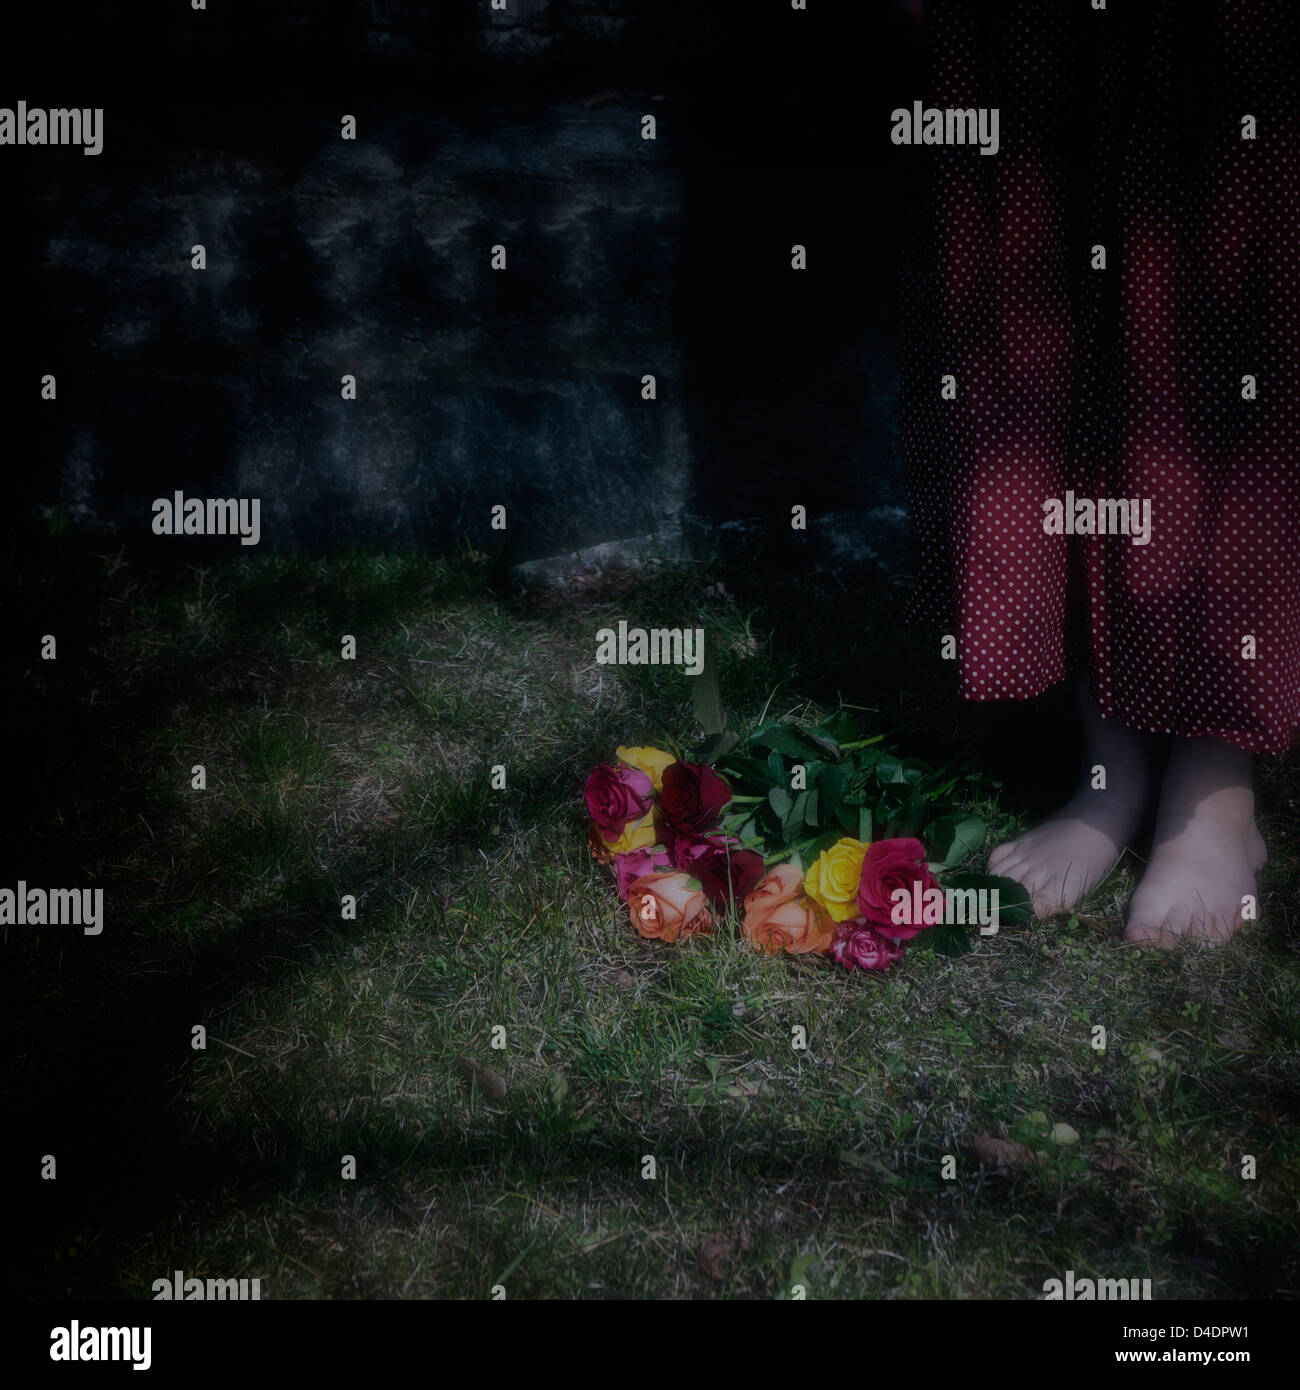 a girl in the dark, bare footed by a bouquet of flowers - Stock Image